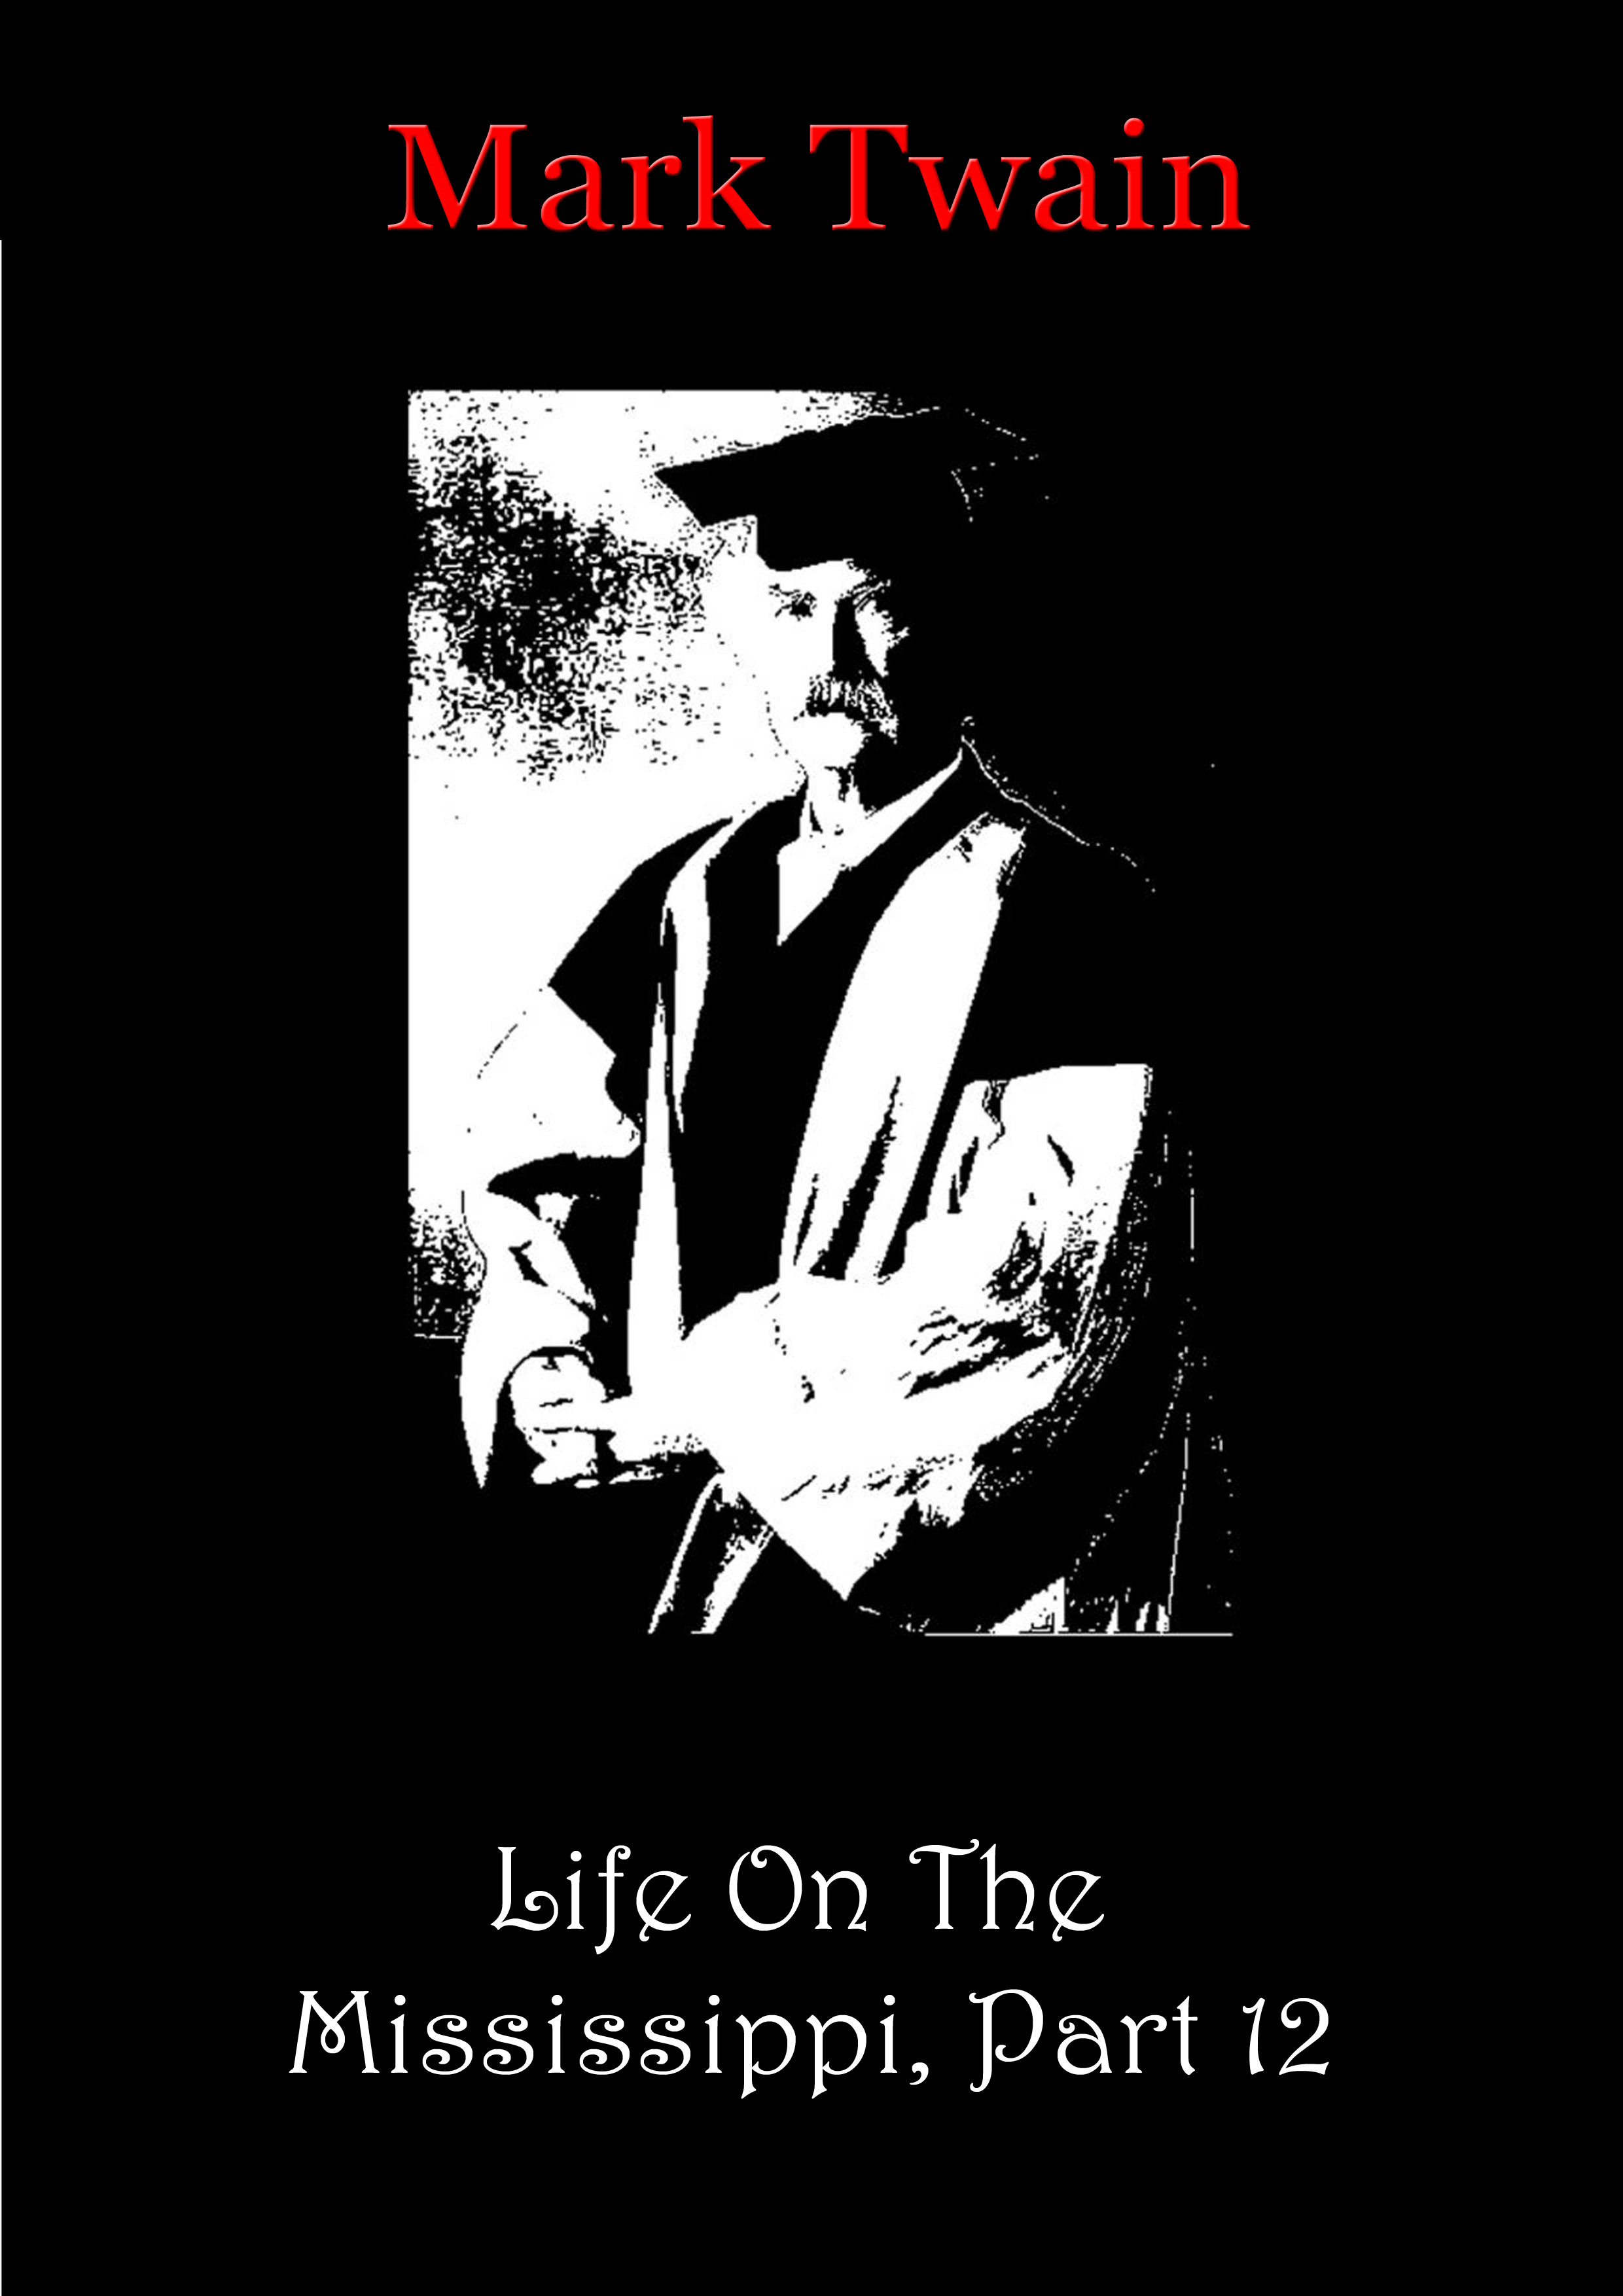 Mark Twain - Life On The Mississippi, Part 12